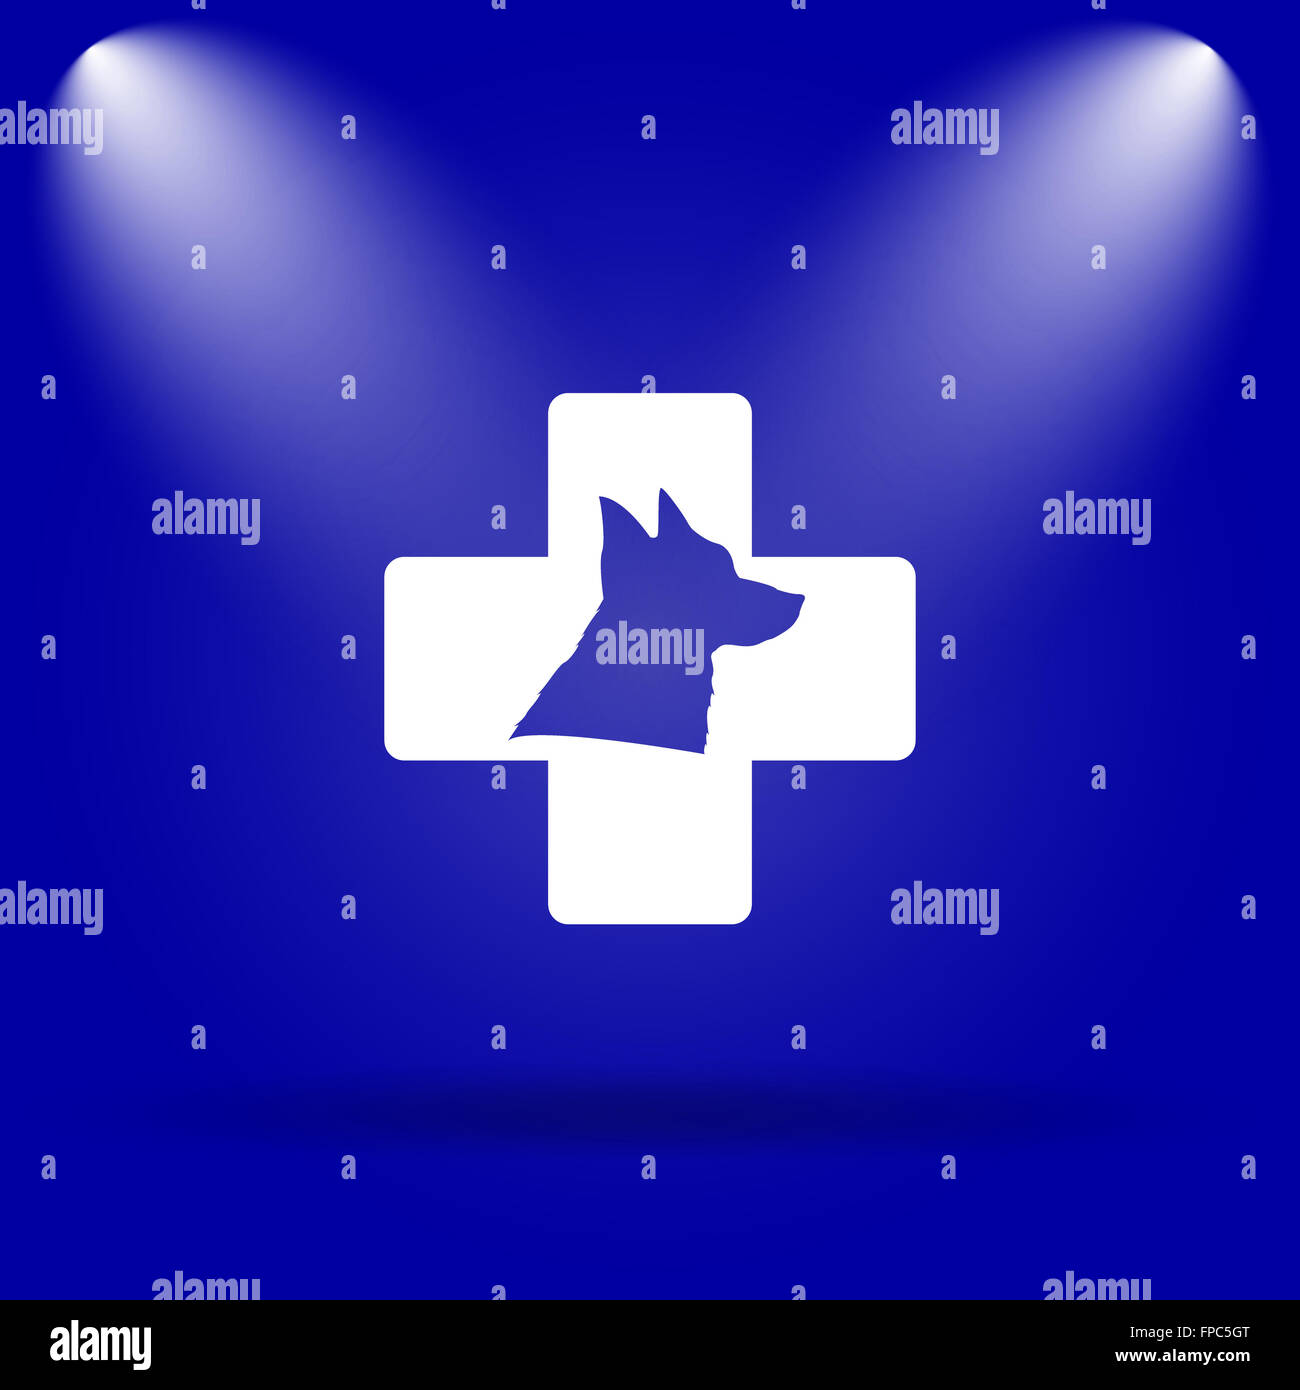 Veterinary icon. Flat icon on blue background. - Stock Image